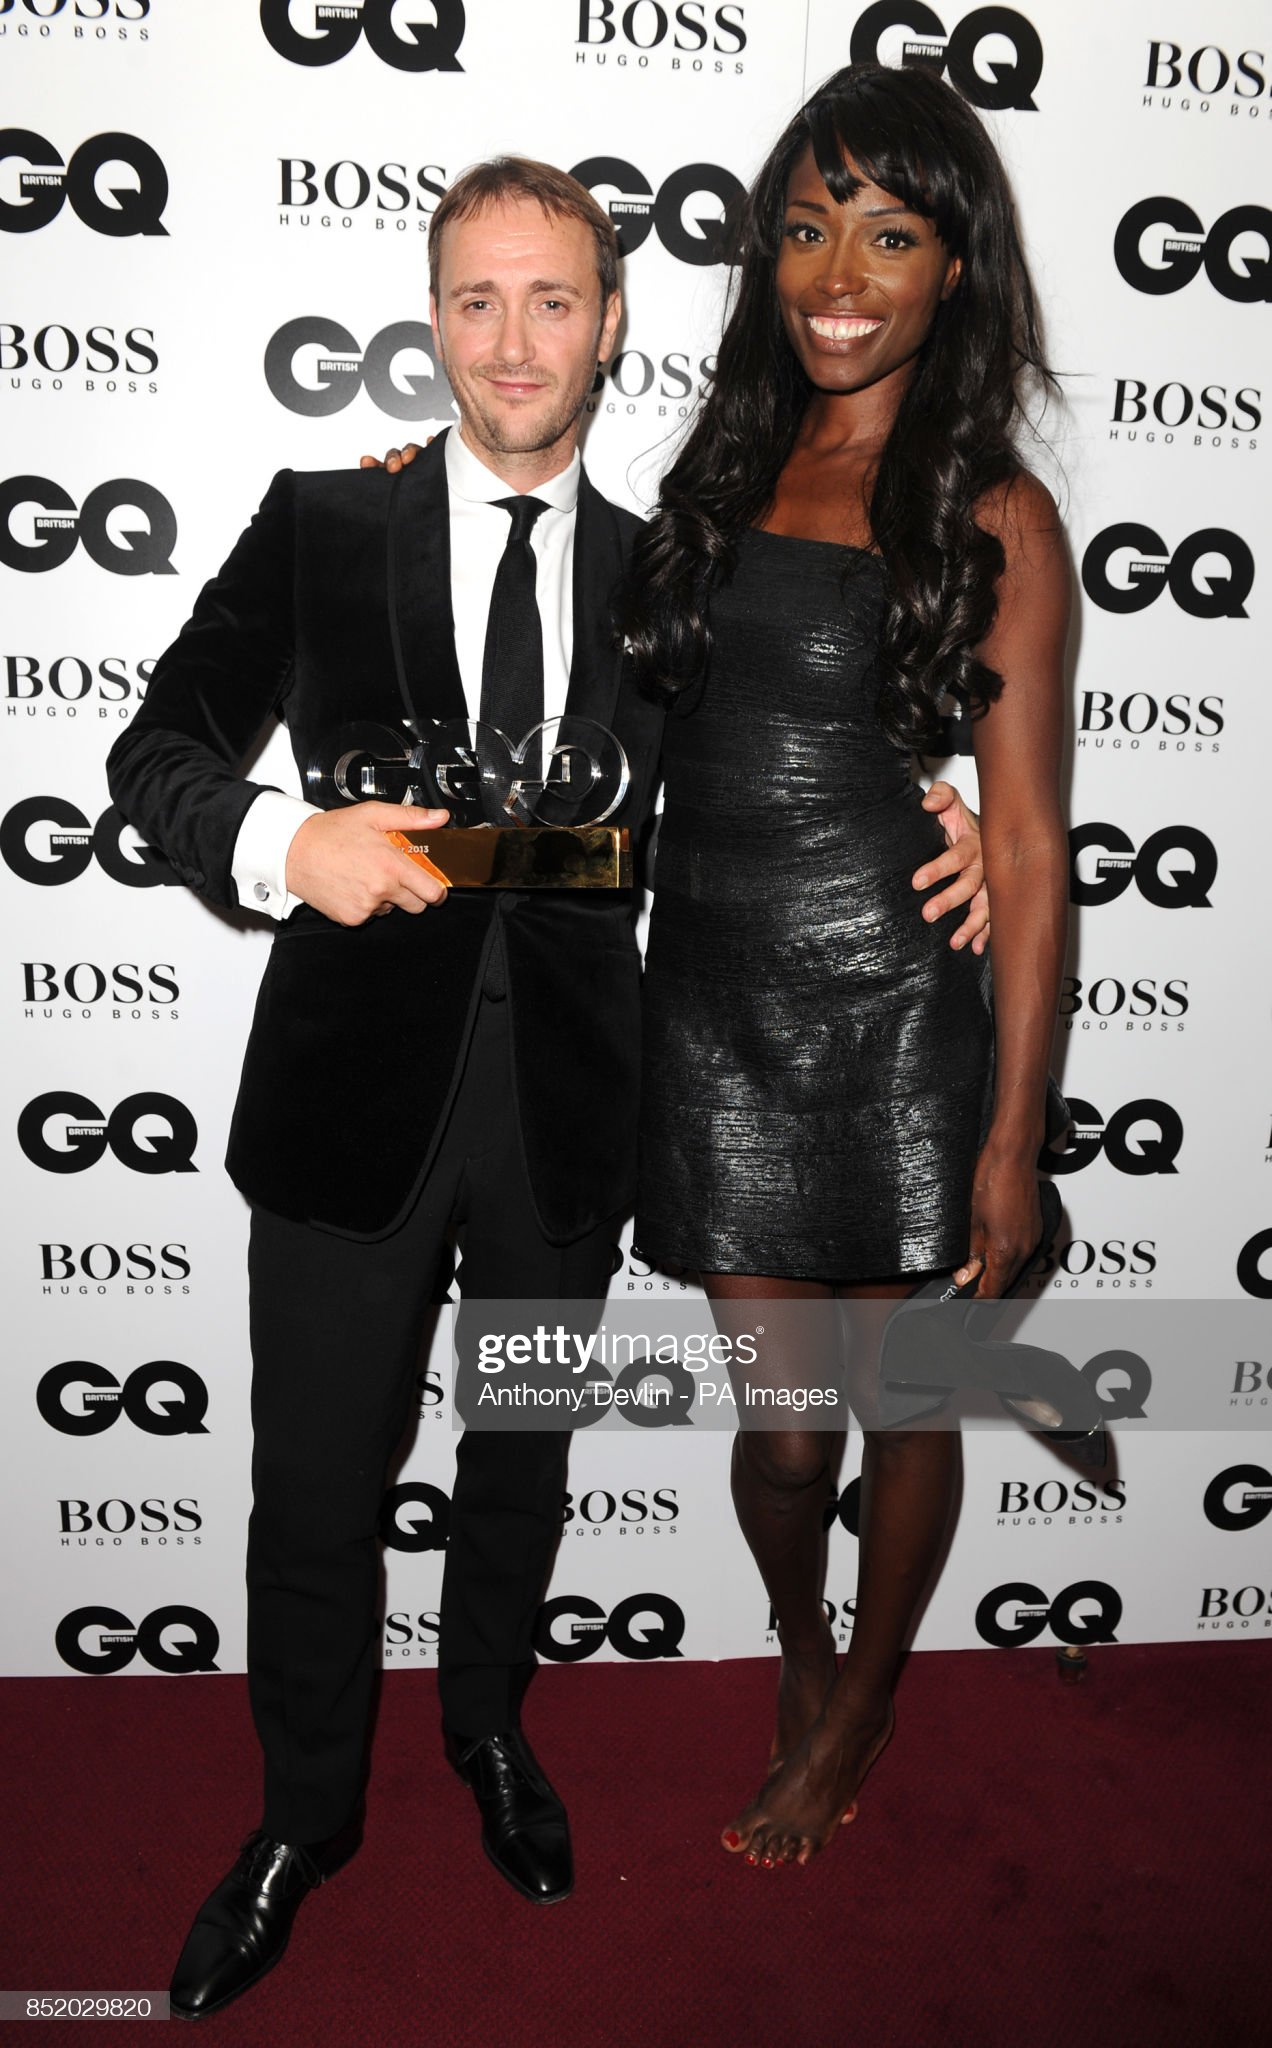 ¿Cuánto mide Lorraine Pascale? - Altura - Real height Jason-atherton-winner-of-the-chef-awards-poses-with-lorraine-pascale-picture-id852029820?s=2048x2048